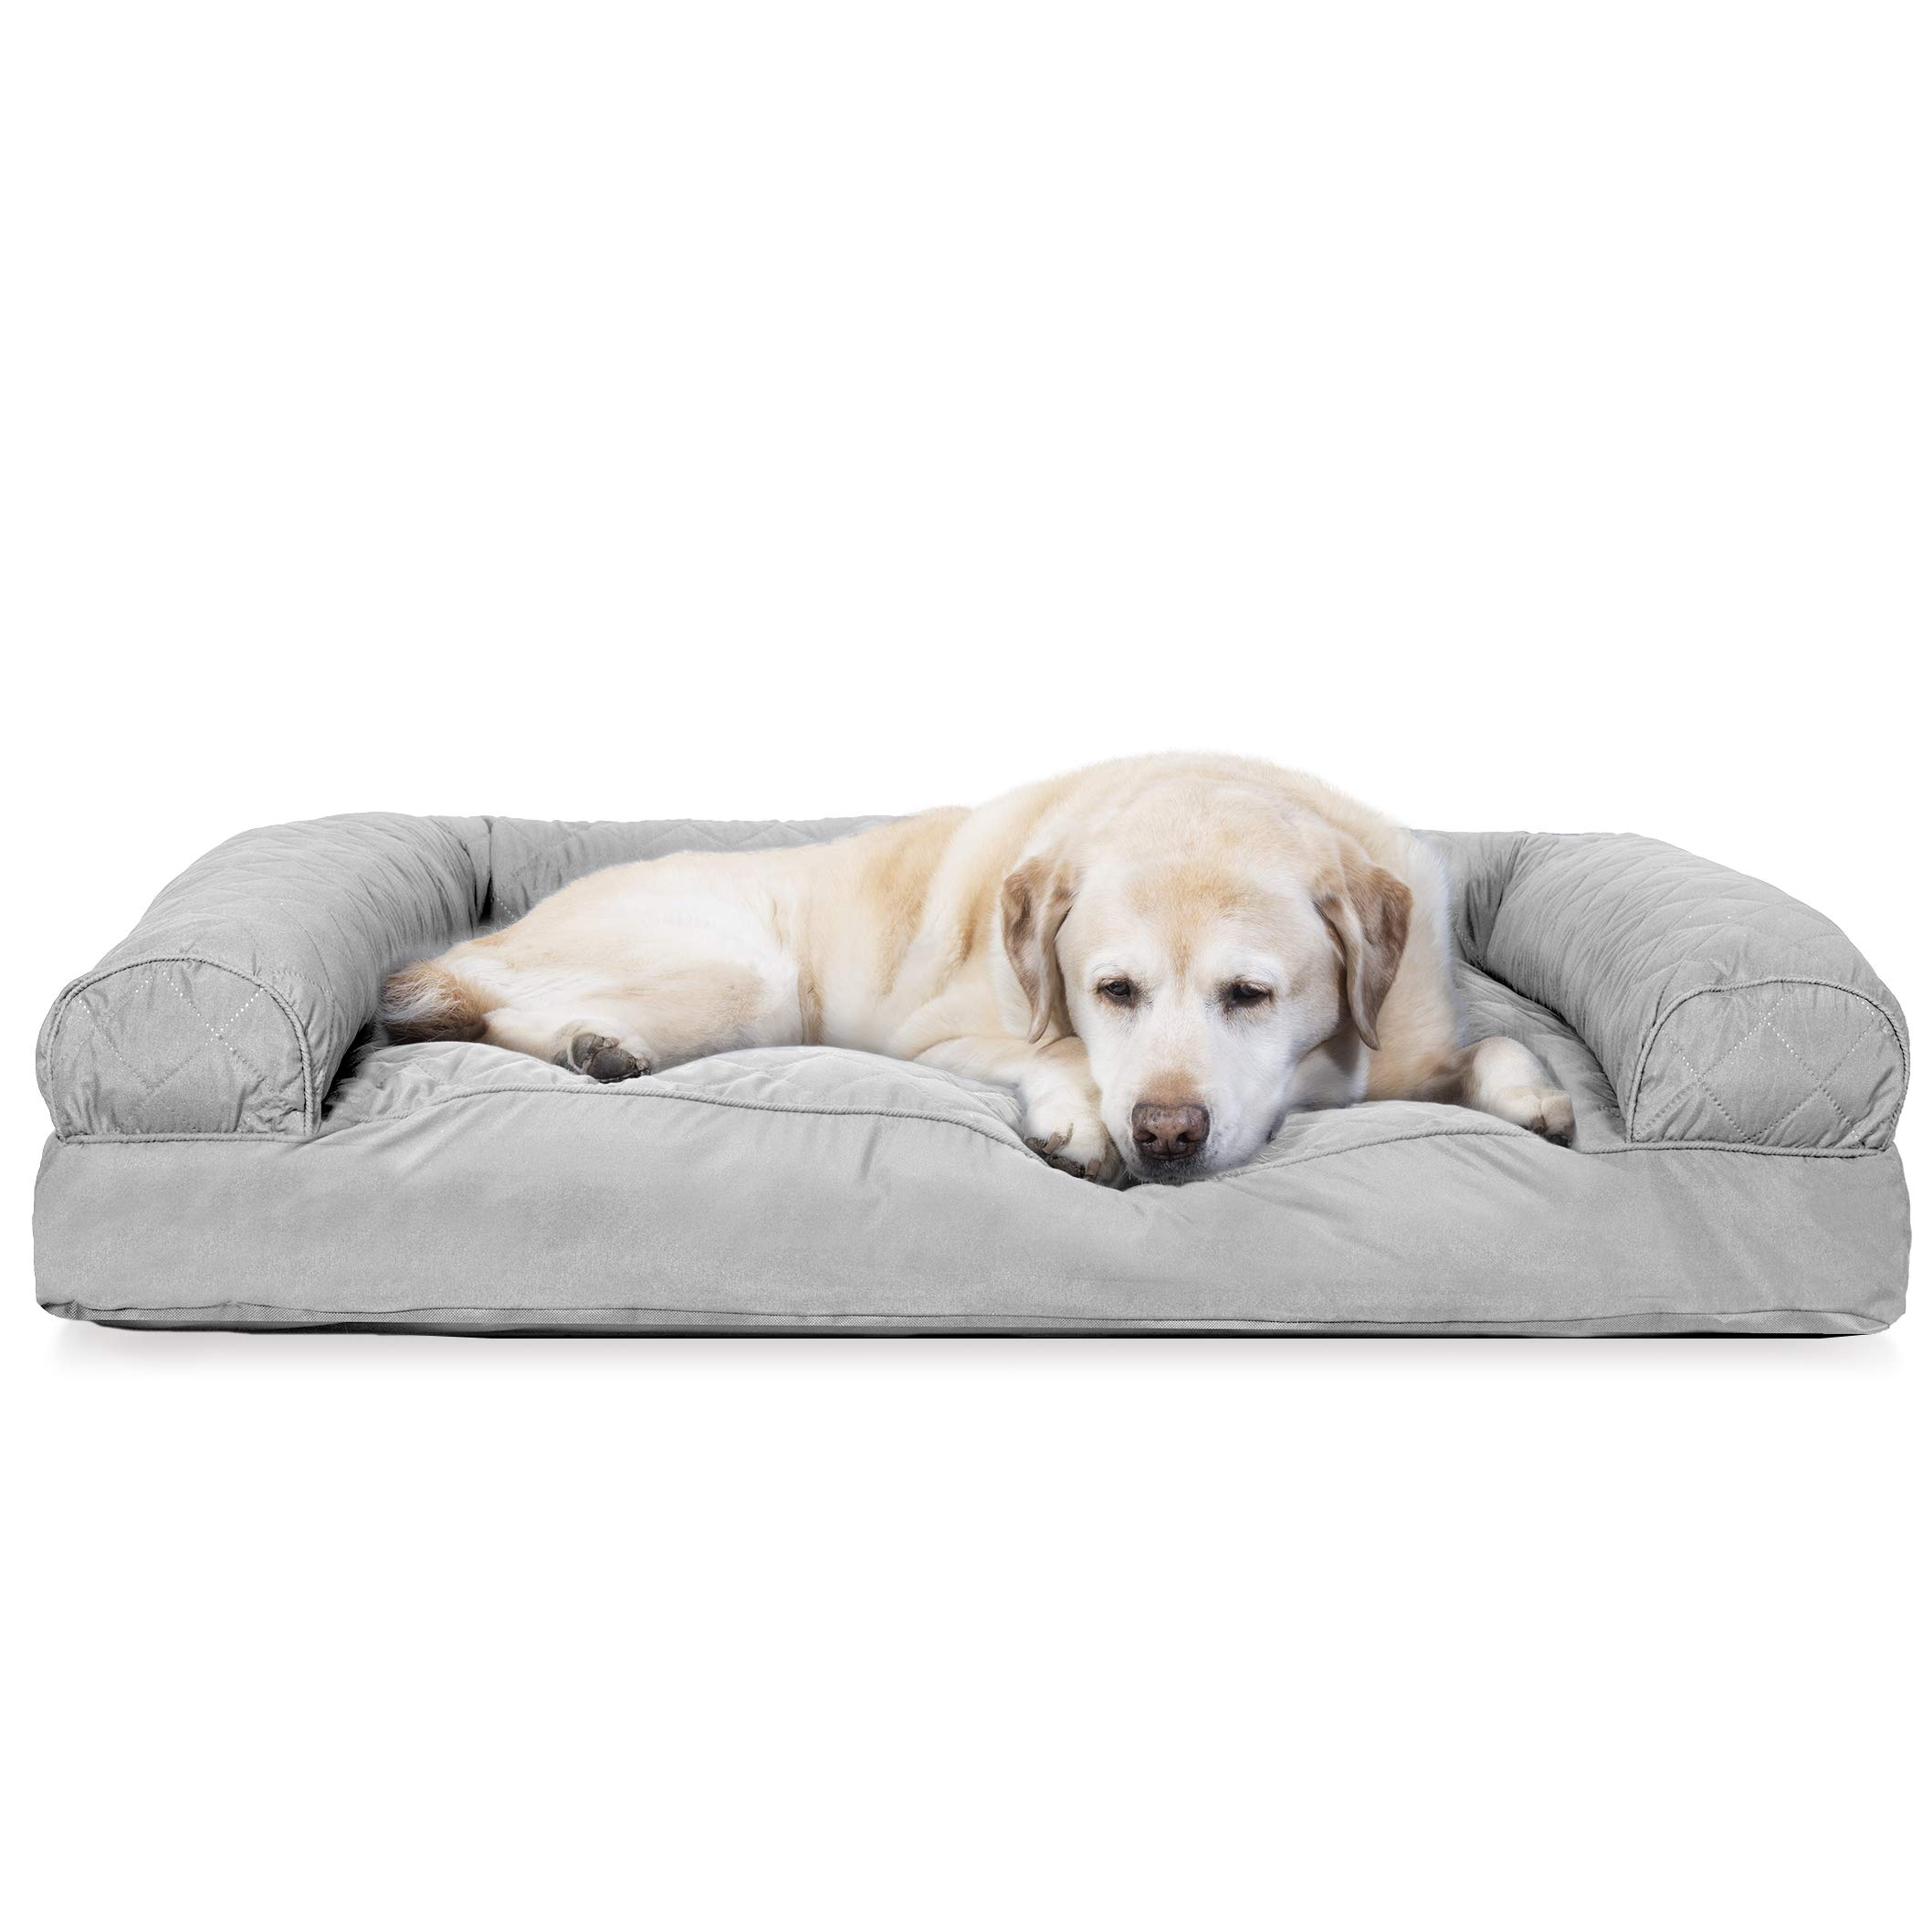 Furhaven Pet Dog Bed | Quilted Pillow Cushion Traditional Sofa-Style Living Room Couch Pet Bed w/ Removable Cover for Dogs & Cats, Silver Gray, Jumbo by Furhaven